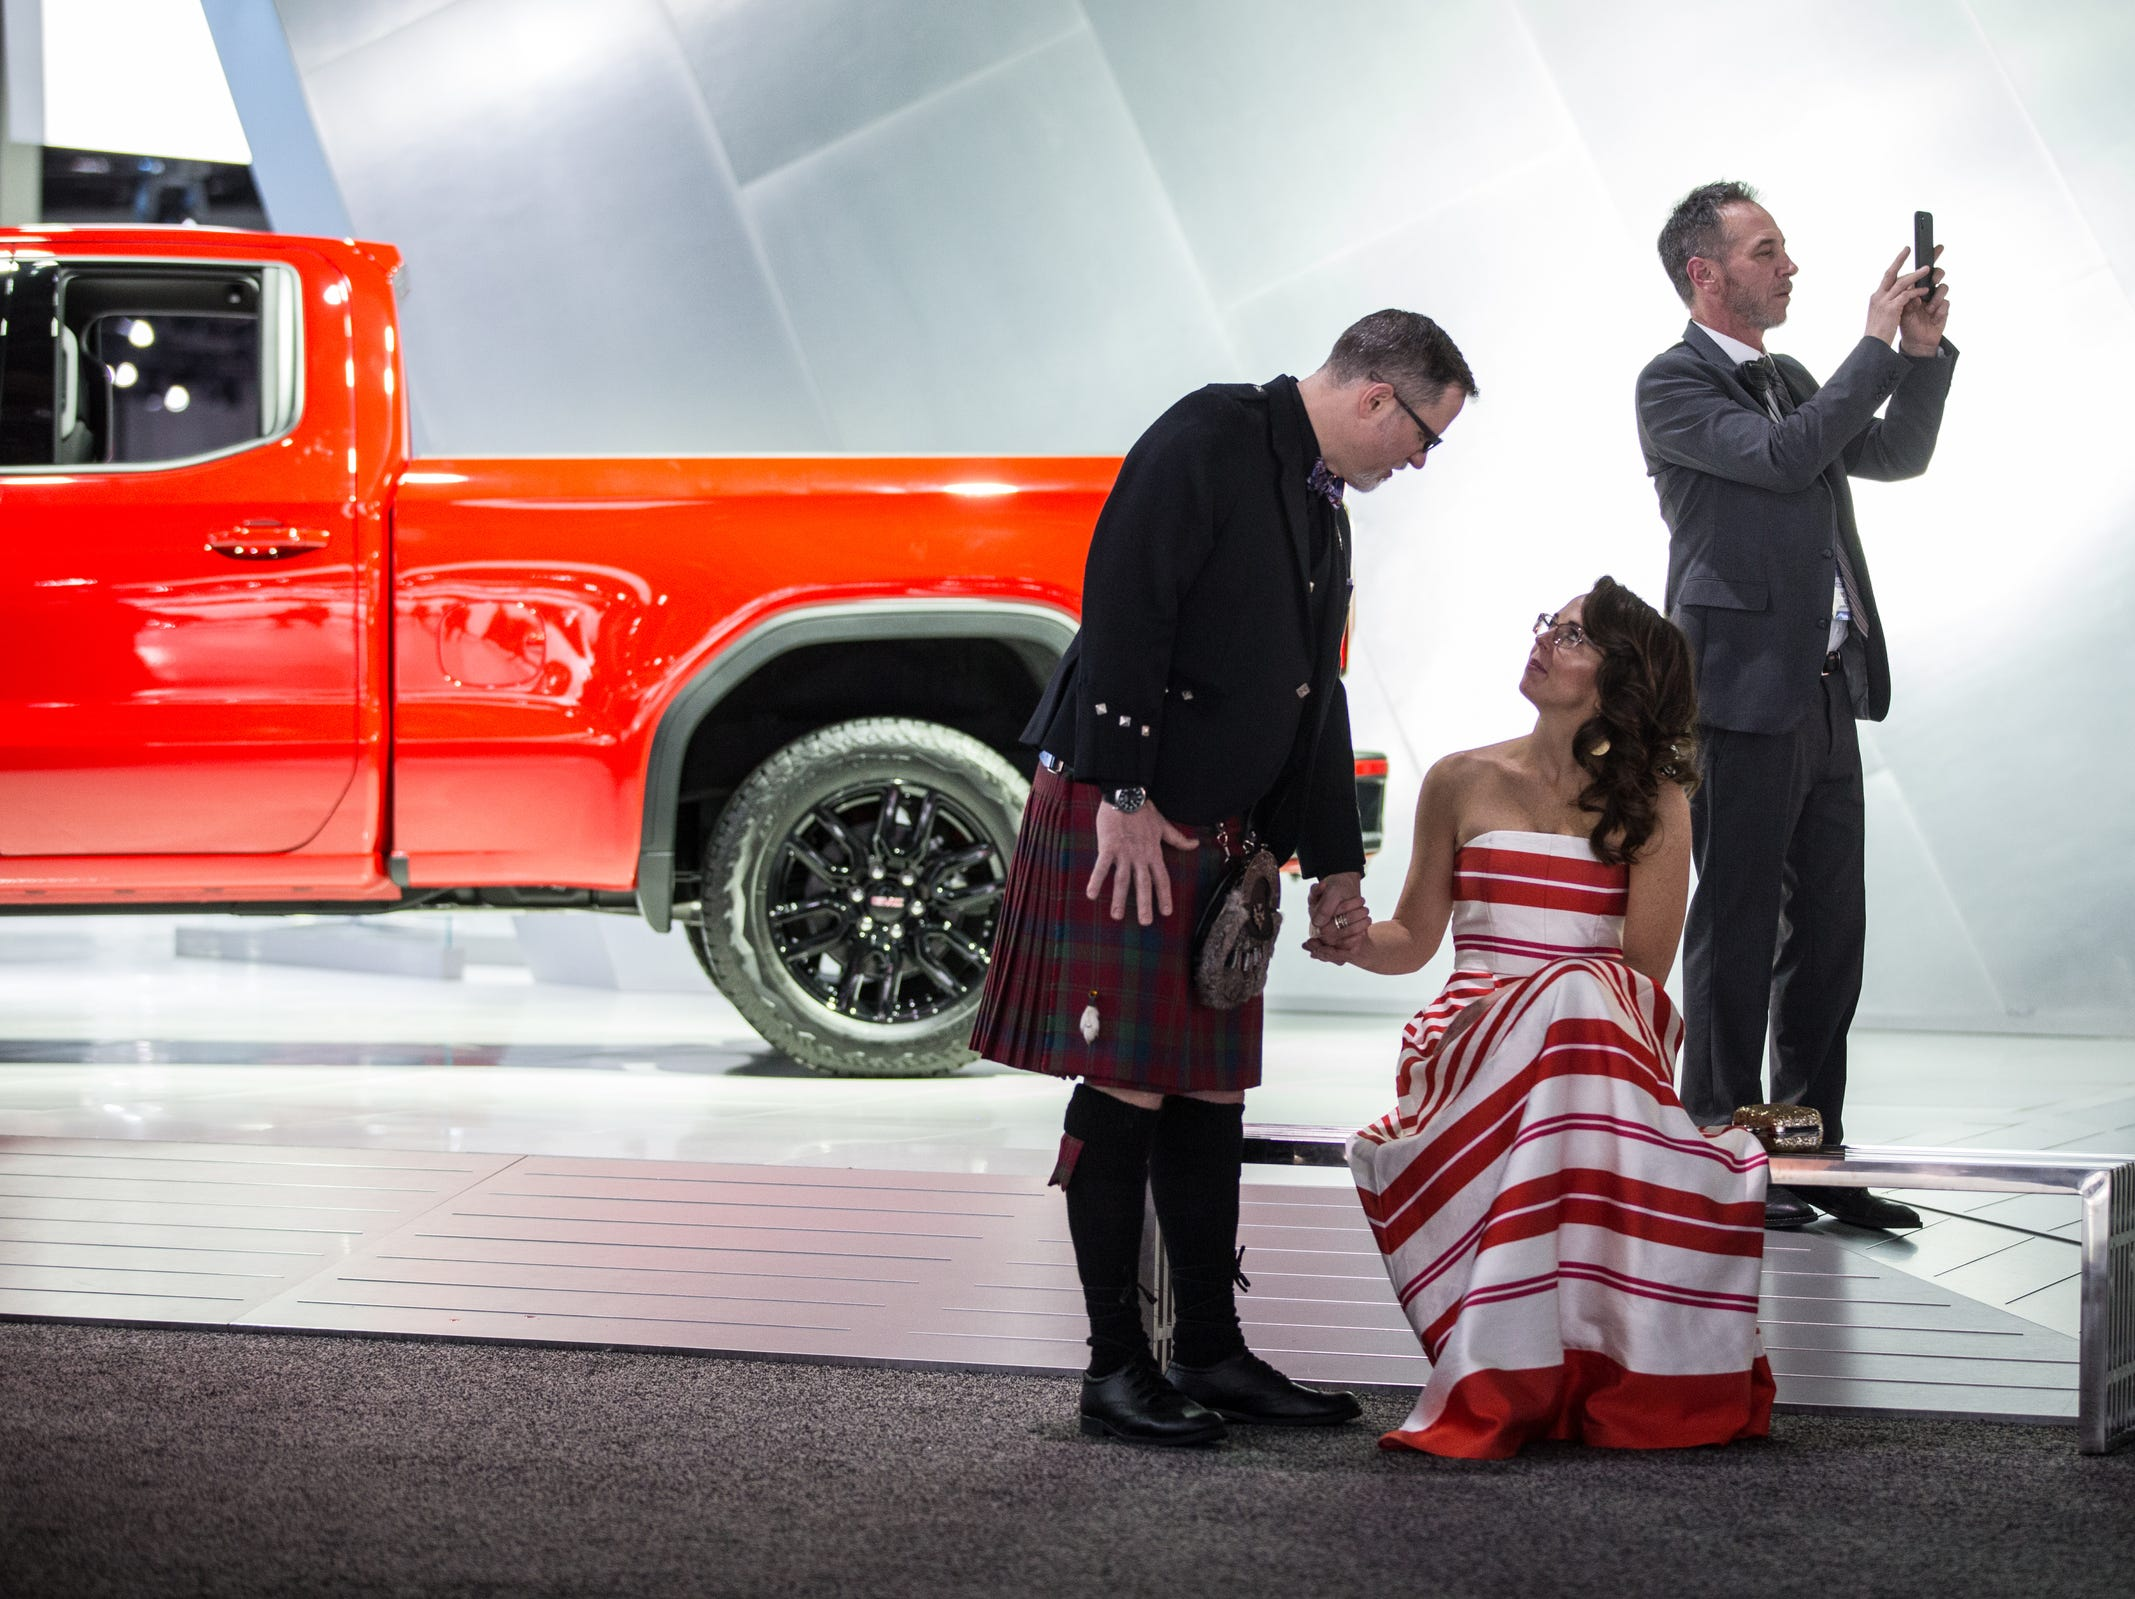 Steve Sechrist of Wixom and his wife Stacey Sechrist talk while taking a rest during the 2019 North American International Auto Show Charity Preview at Cobo Center in Detroit on Friday, January 18, 2019.